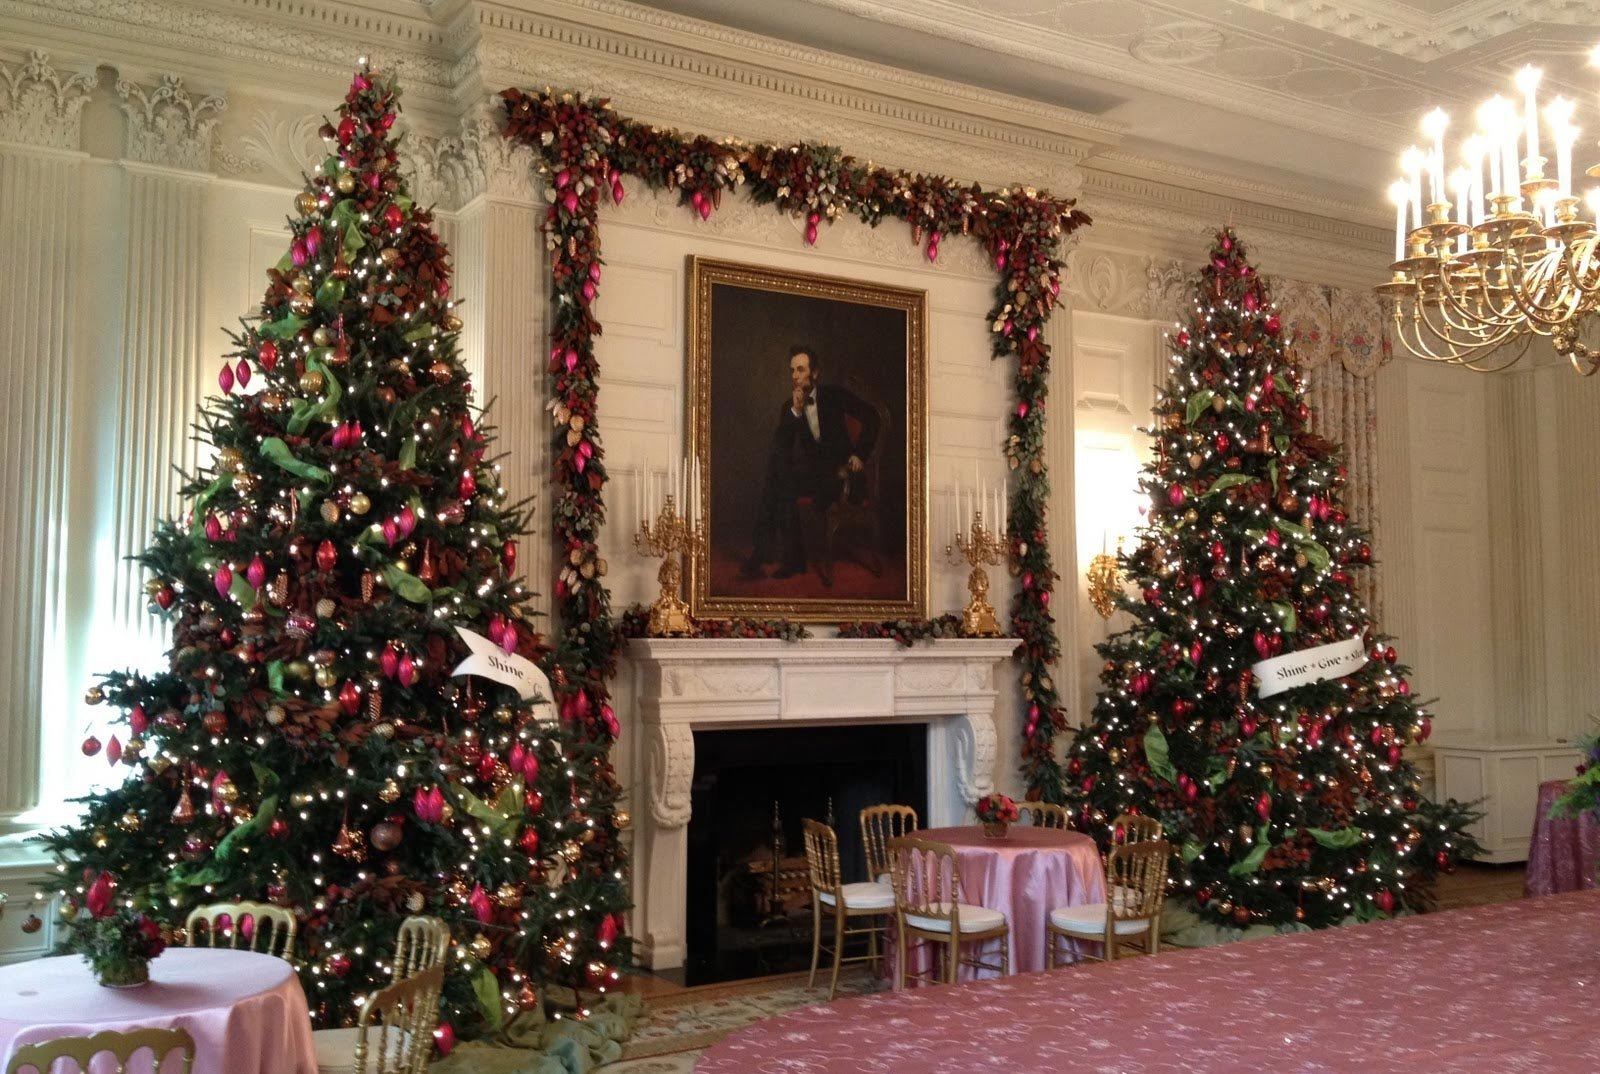 10 Most Popular Christmas Decorating Ideas For 2013 christmas decor ideas there are more christmas tree decorating ideas 1